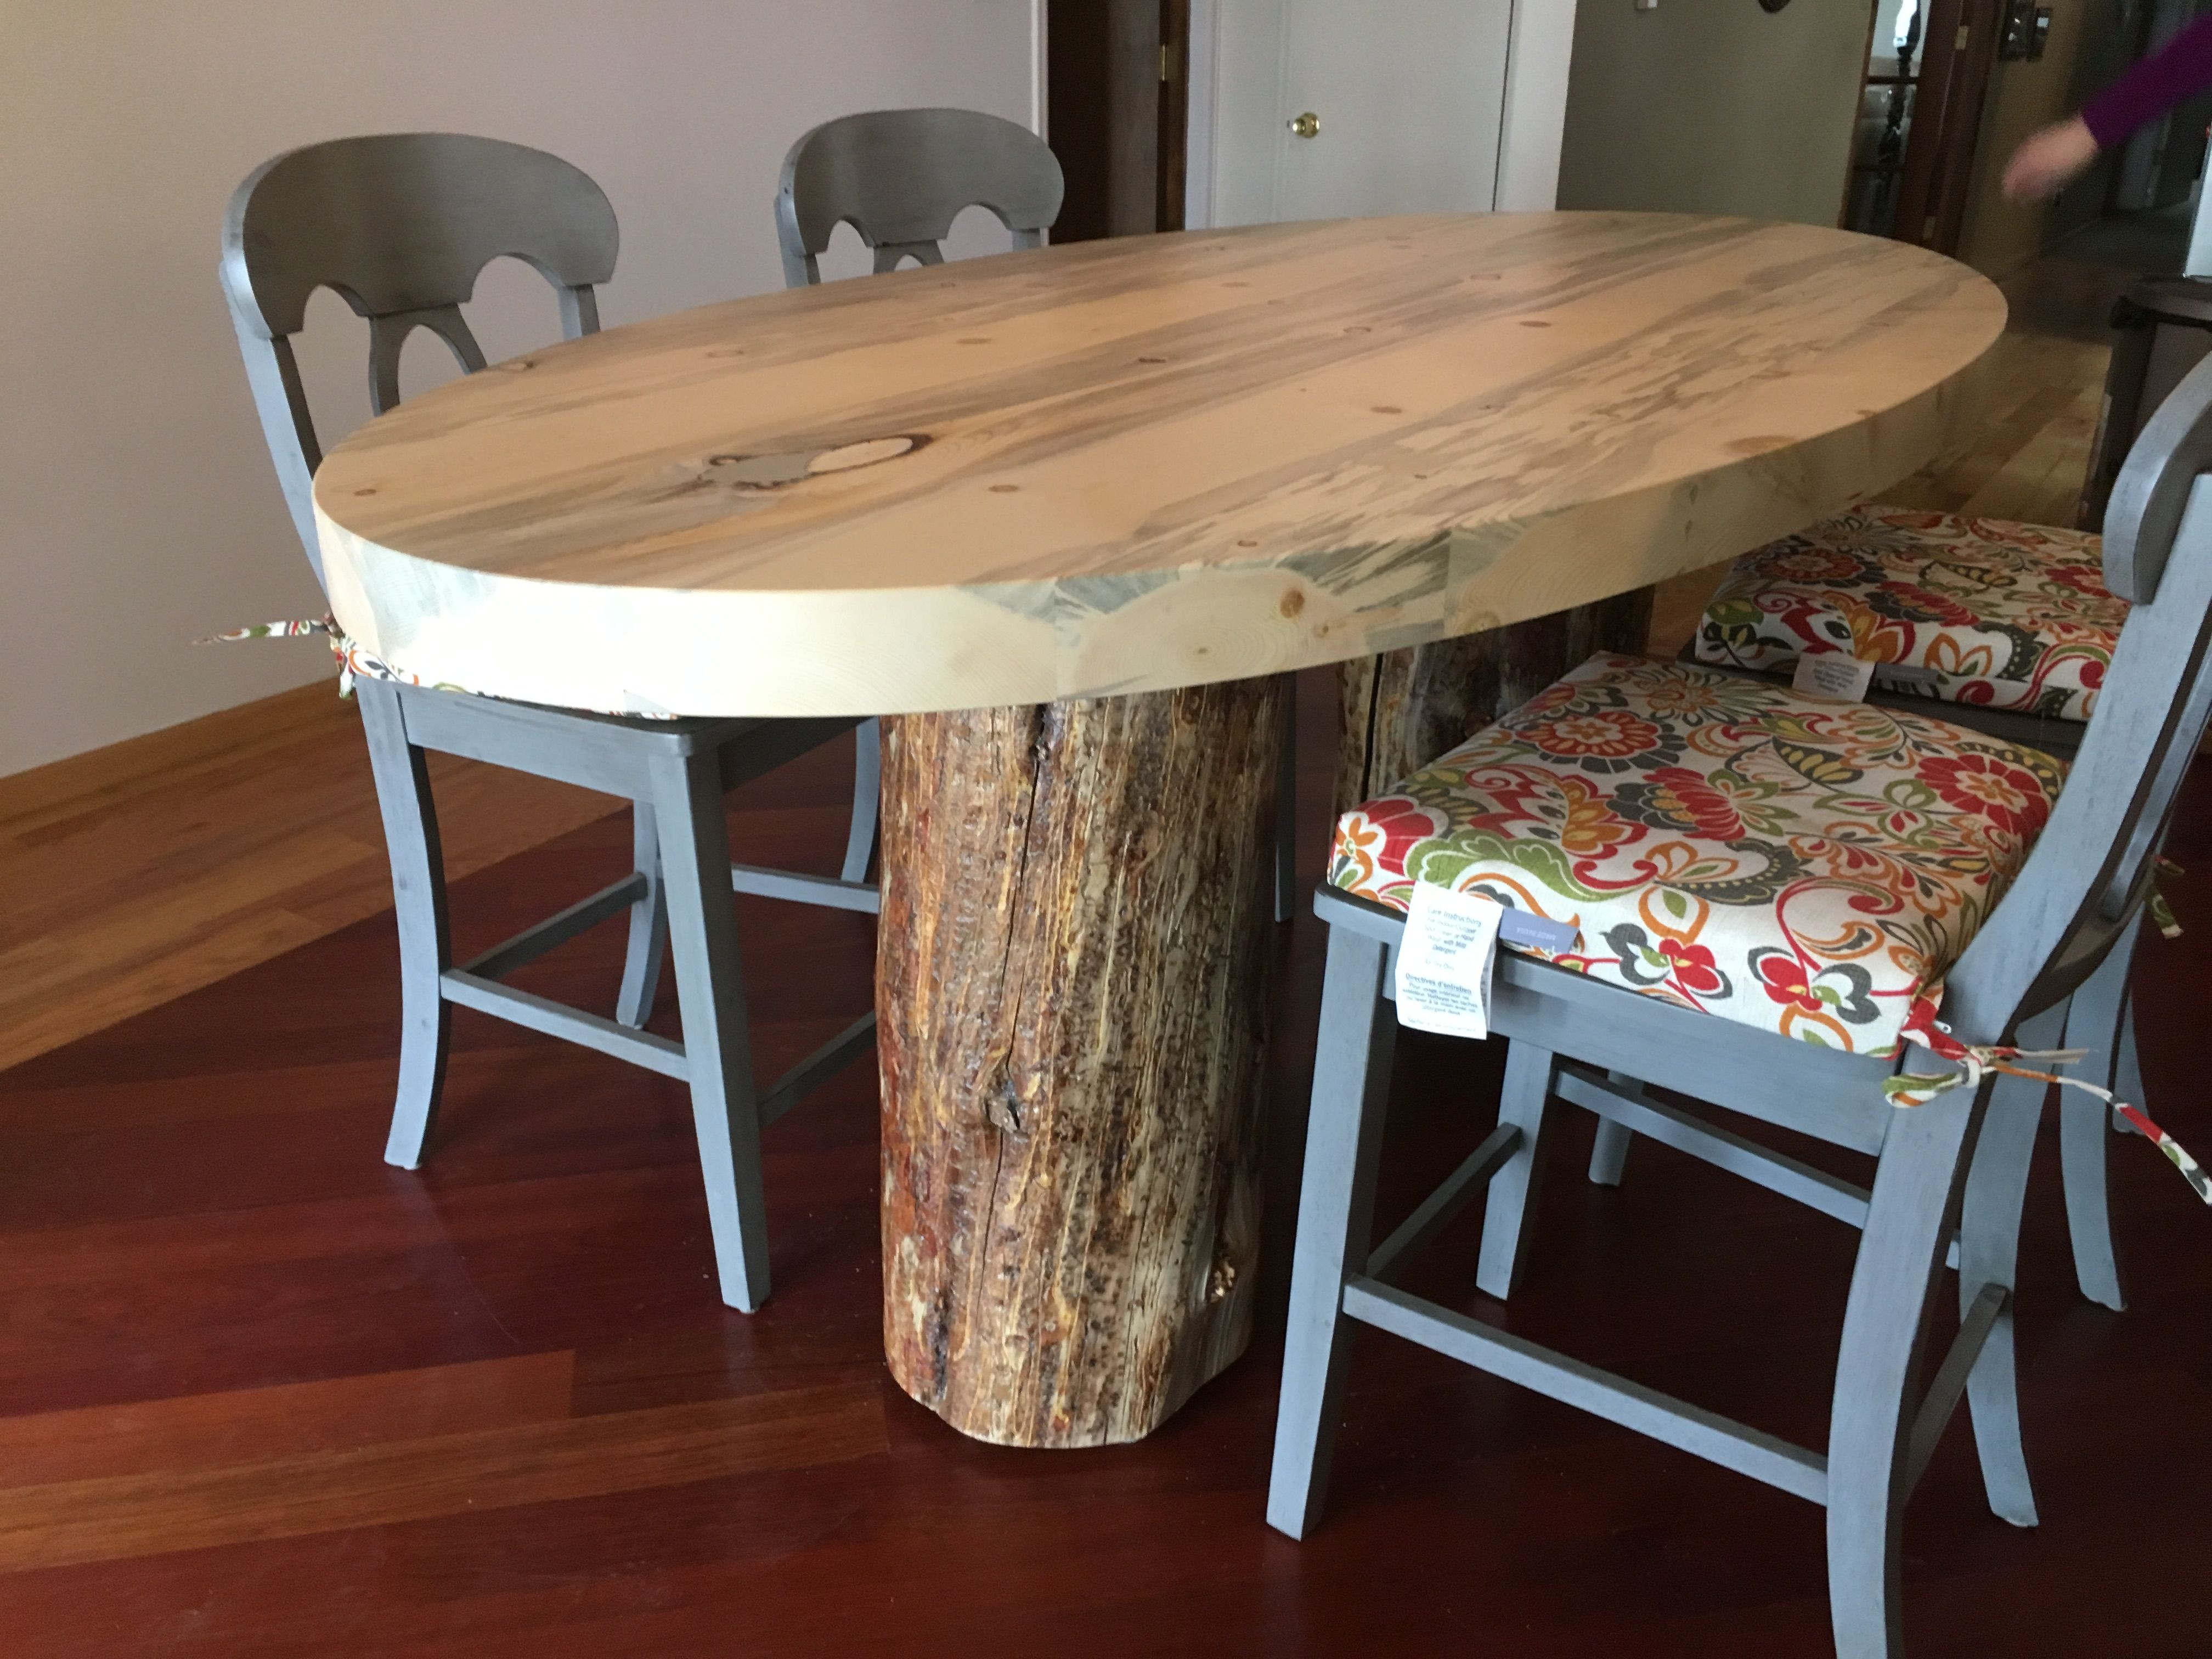 Colorado tables rustic wooden furniture table custom table